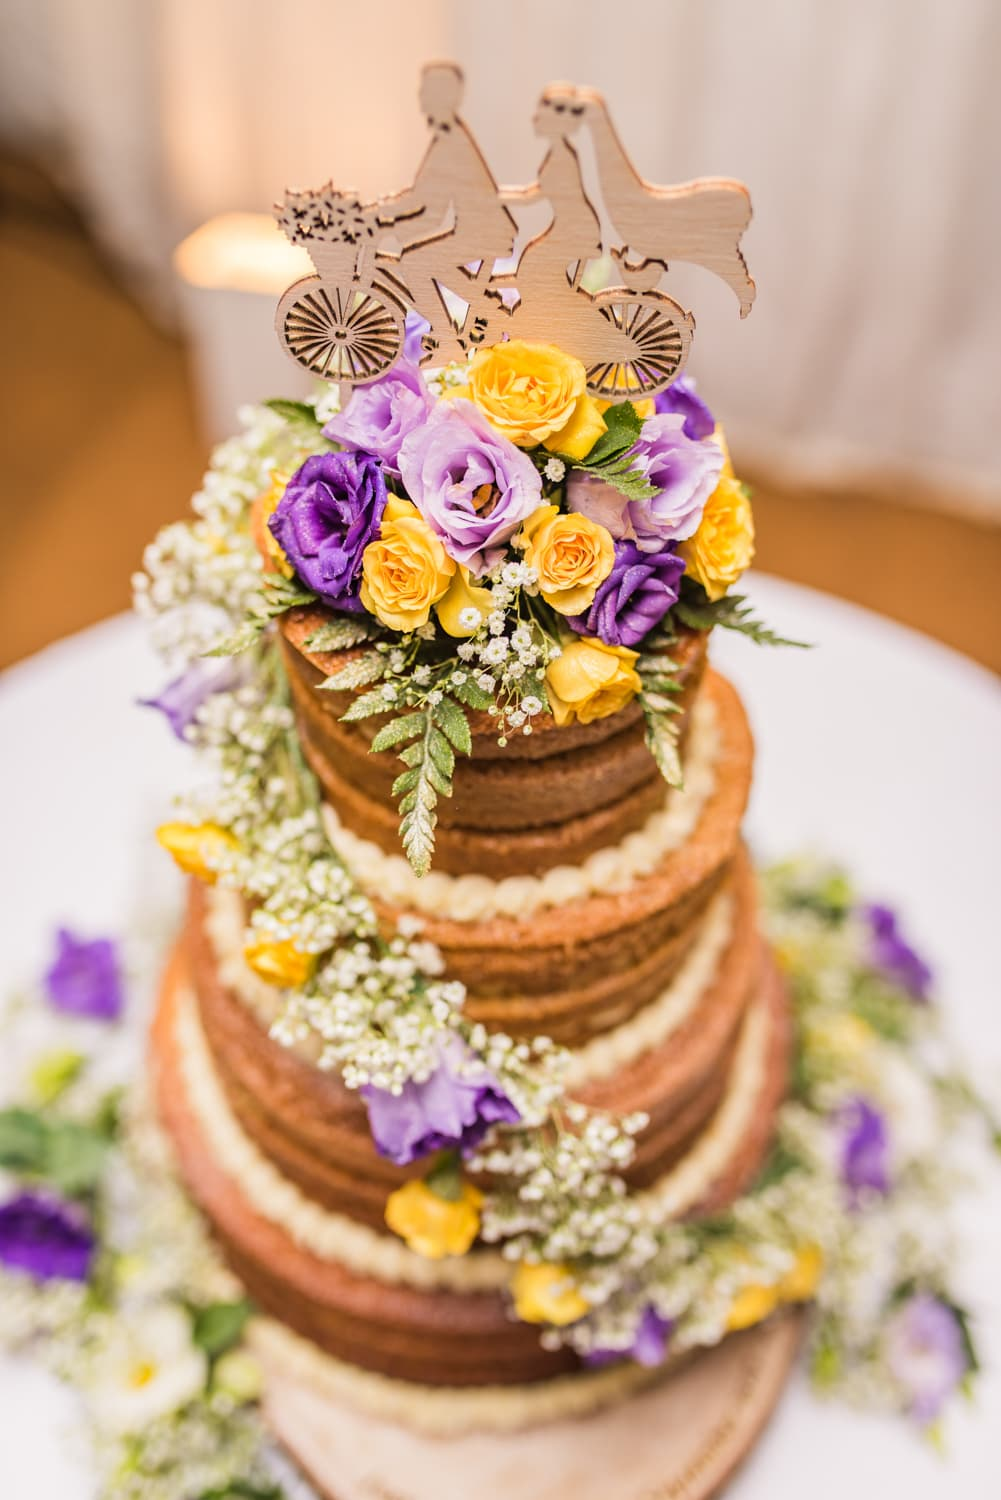 103-dorset-wedding-cake.jpg